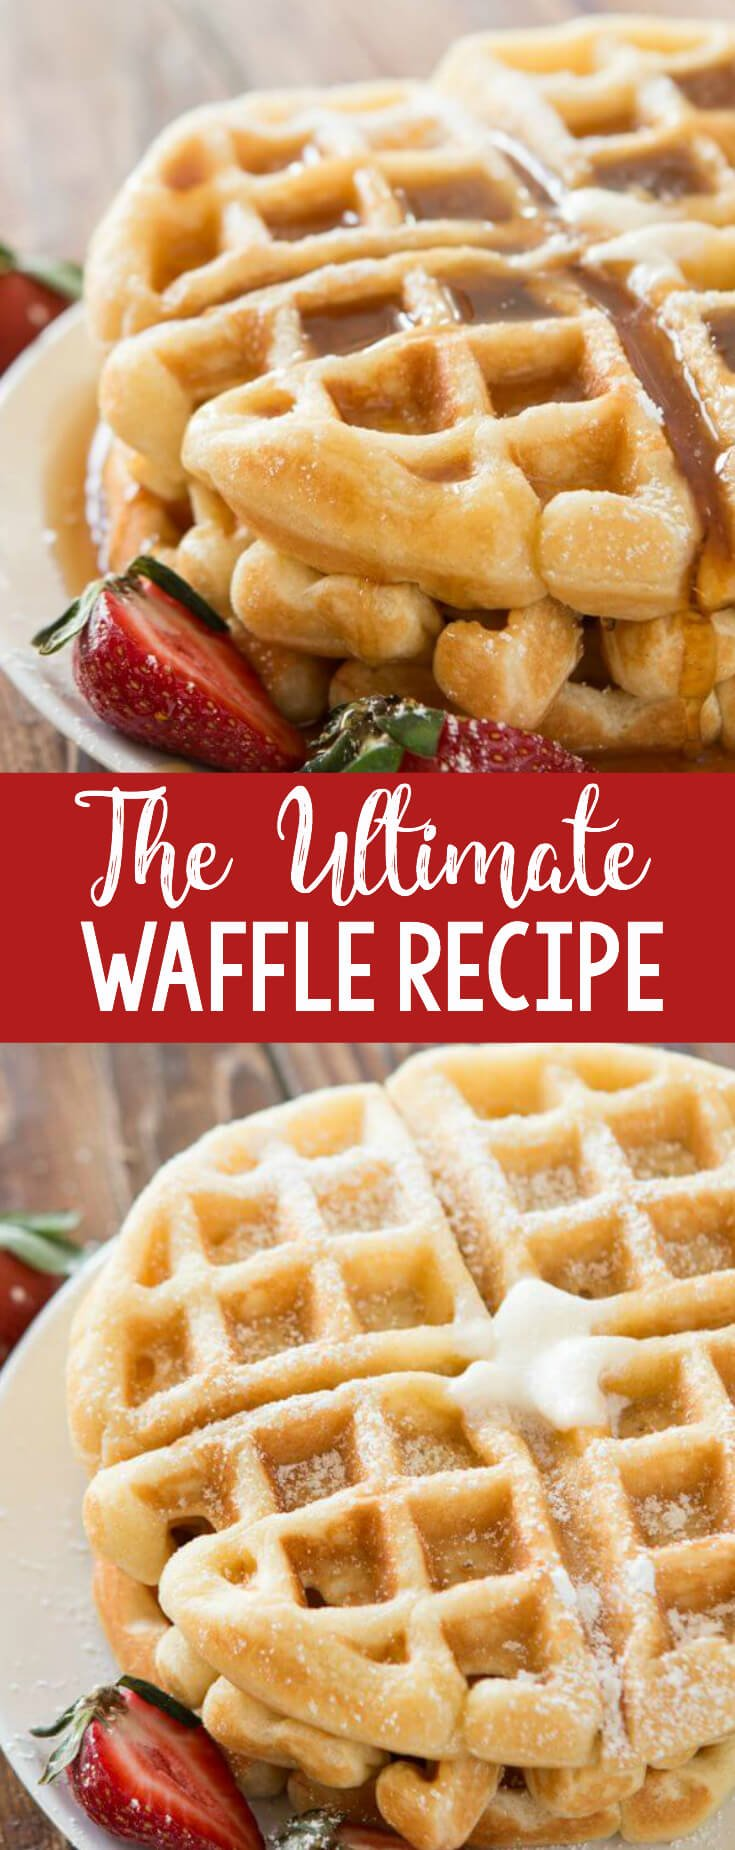 We tested over 100 waffles and this is the best buttermilk recipe out there! The ultimate waffle recipe and it's all thanks to a few simple secrets.